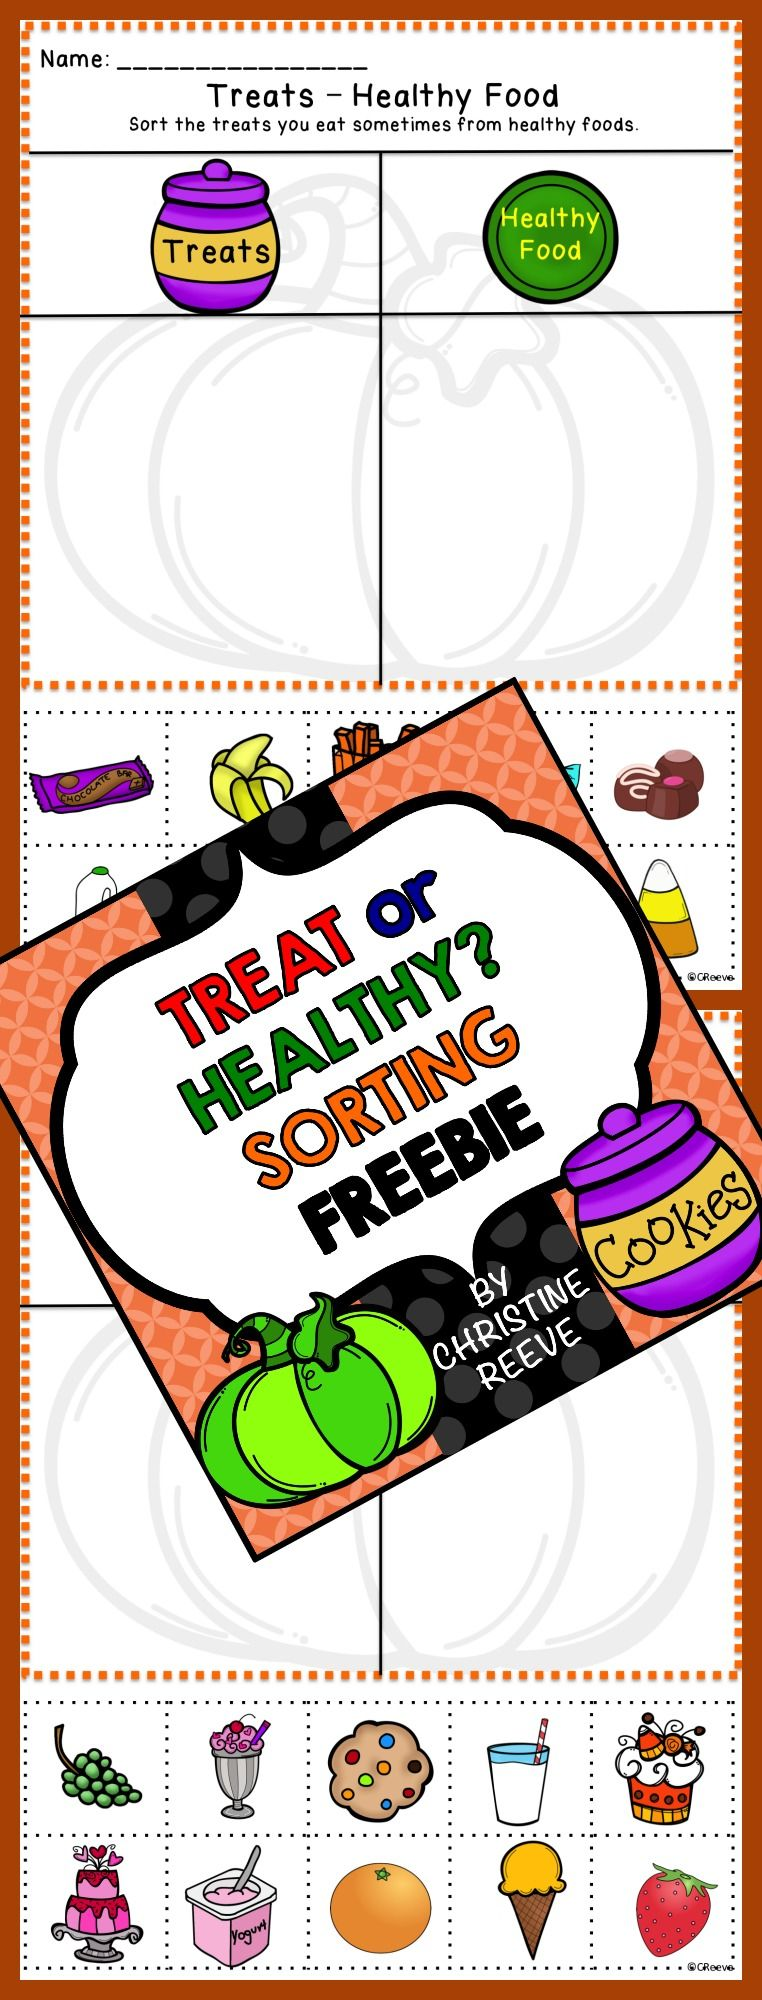 worksheet Healthy Food Sorting Worksheet this free sorting activity for healthy not foods perfect cotton candy machines create human cells